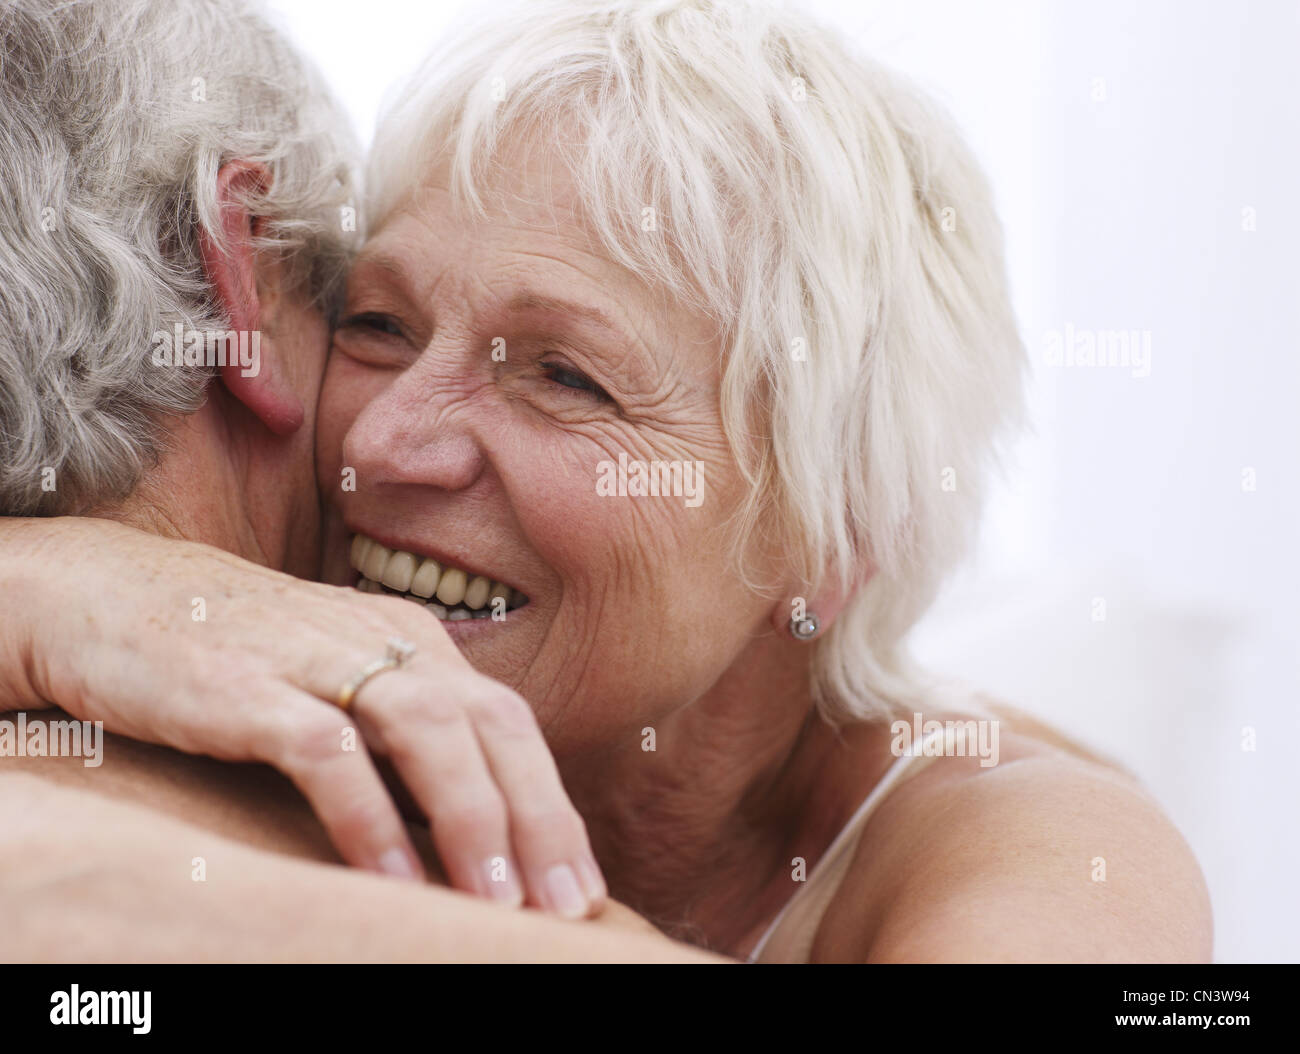 Senior couple embracing, close up - Stock Image